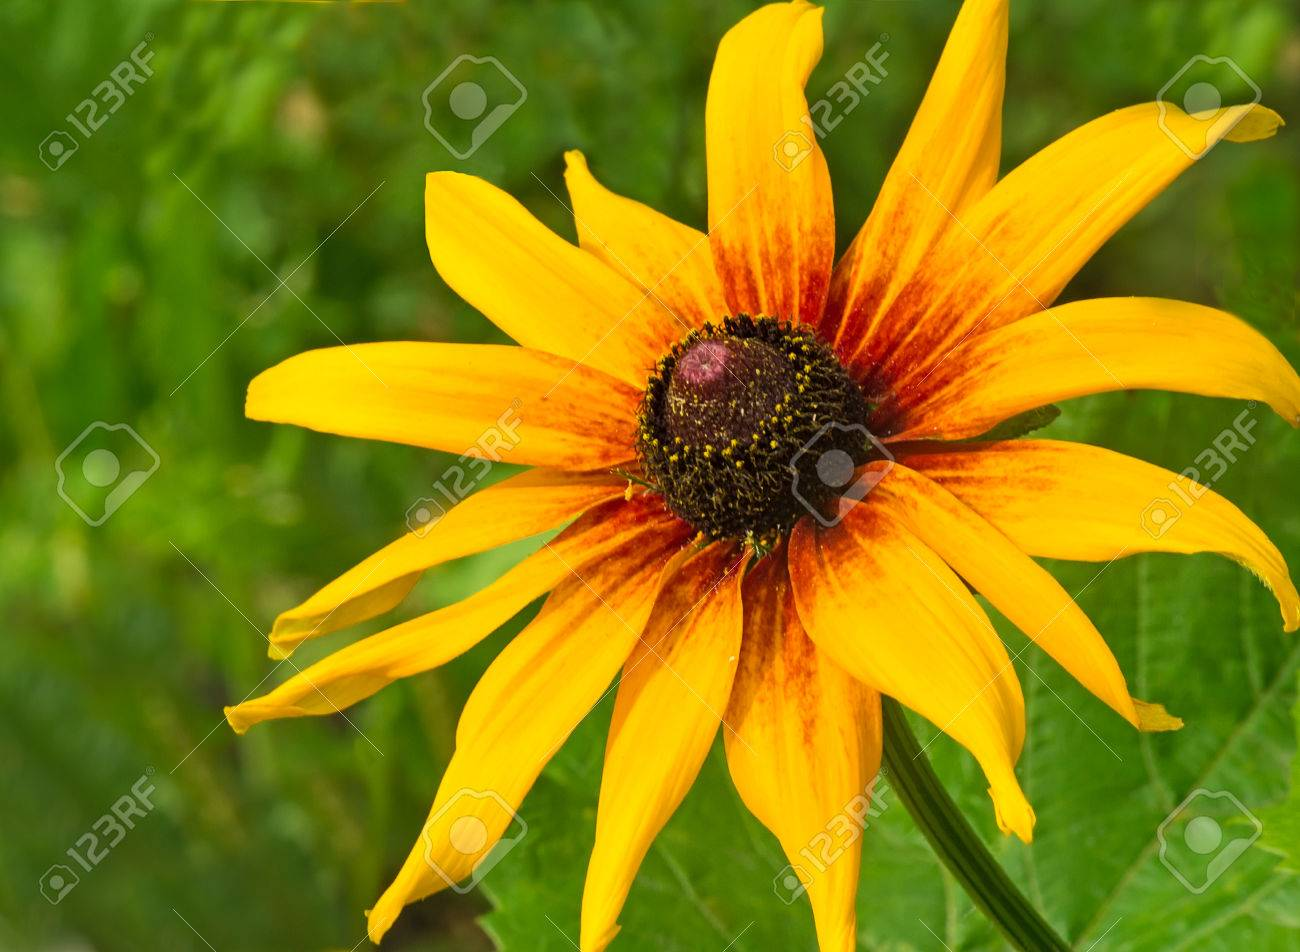 Big Beautiful Flower Of Yellow Color Blossoming In A Garden Against